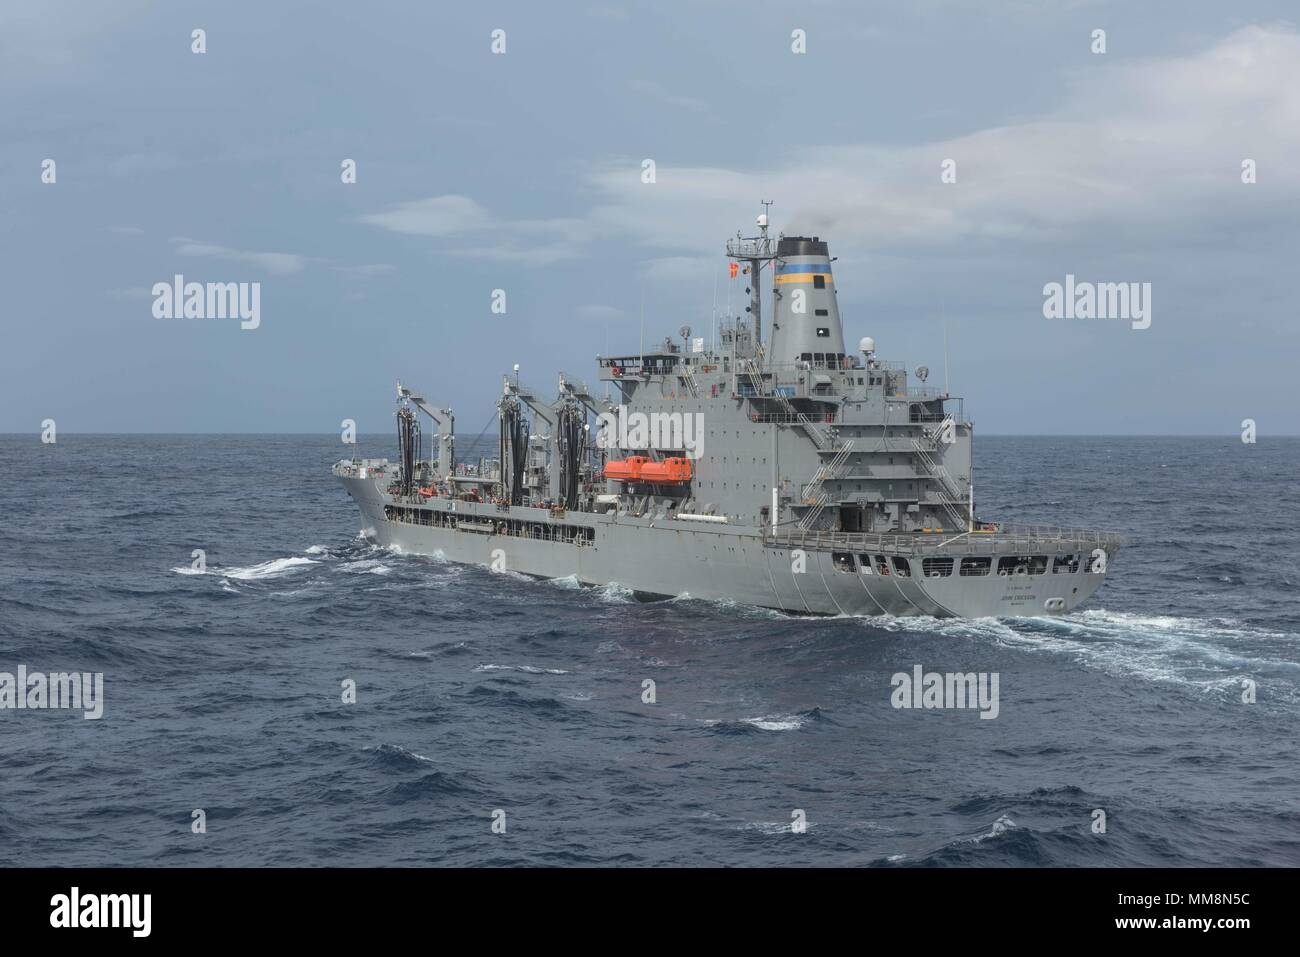 170913-N-PF593-031 PHILIPPINE SEA (Sept. 13, 2017) Military Sealift Command's fleet replenishment oiler, USNS John Ericsson (TA-O 194), steams alongside The Navy's forward-deployed aircraft carrier, USS Ronald Reagan (CVN 76), before conducting a refueling-at-sea. John Ericsson provides underway replenishment fuel, fleet cargo, and stores to ships at sea. Ronald Reagan provides a combat-ready force, which protects and defends the collective maritime interests of the U.S. and its allies and partners in the Indo-Asia-Pacific region. (U.S. Navy photo by Mass Communication Specialist 2nd Jamal McN - Stock Image